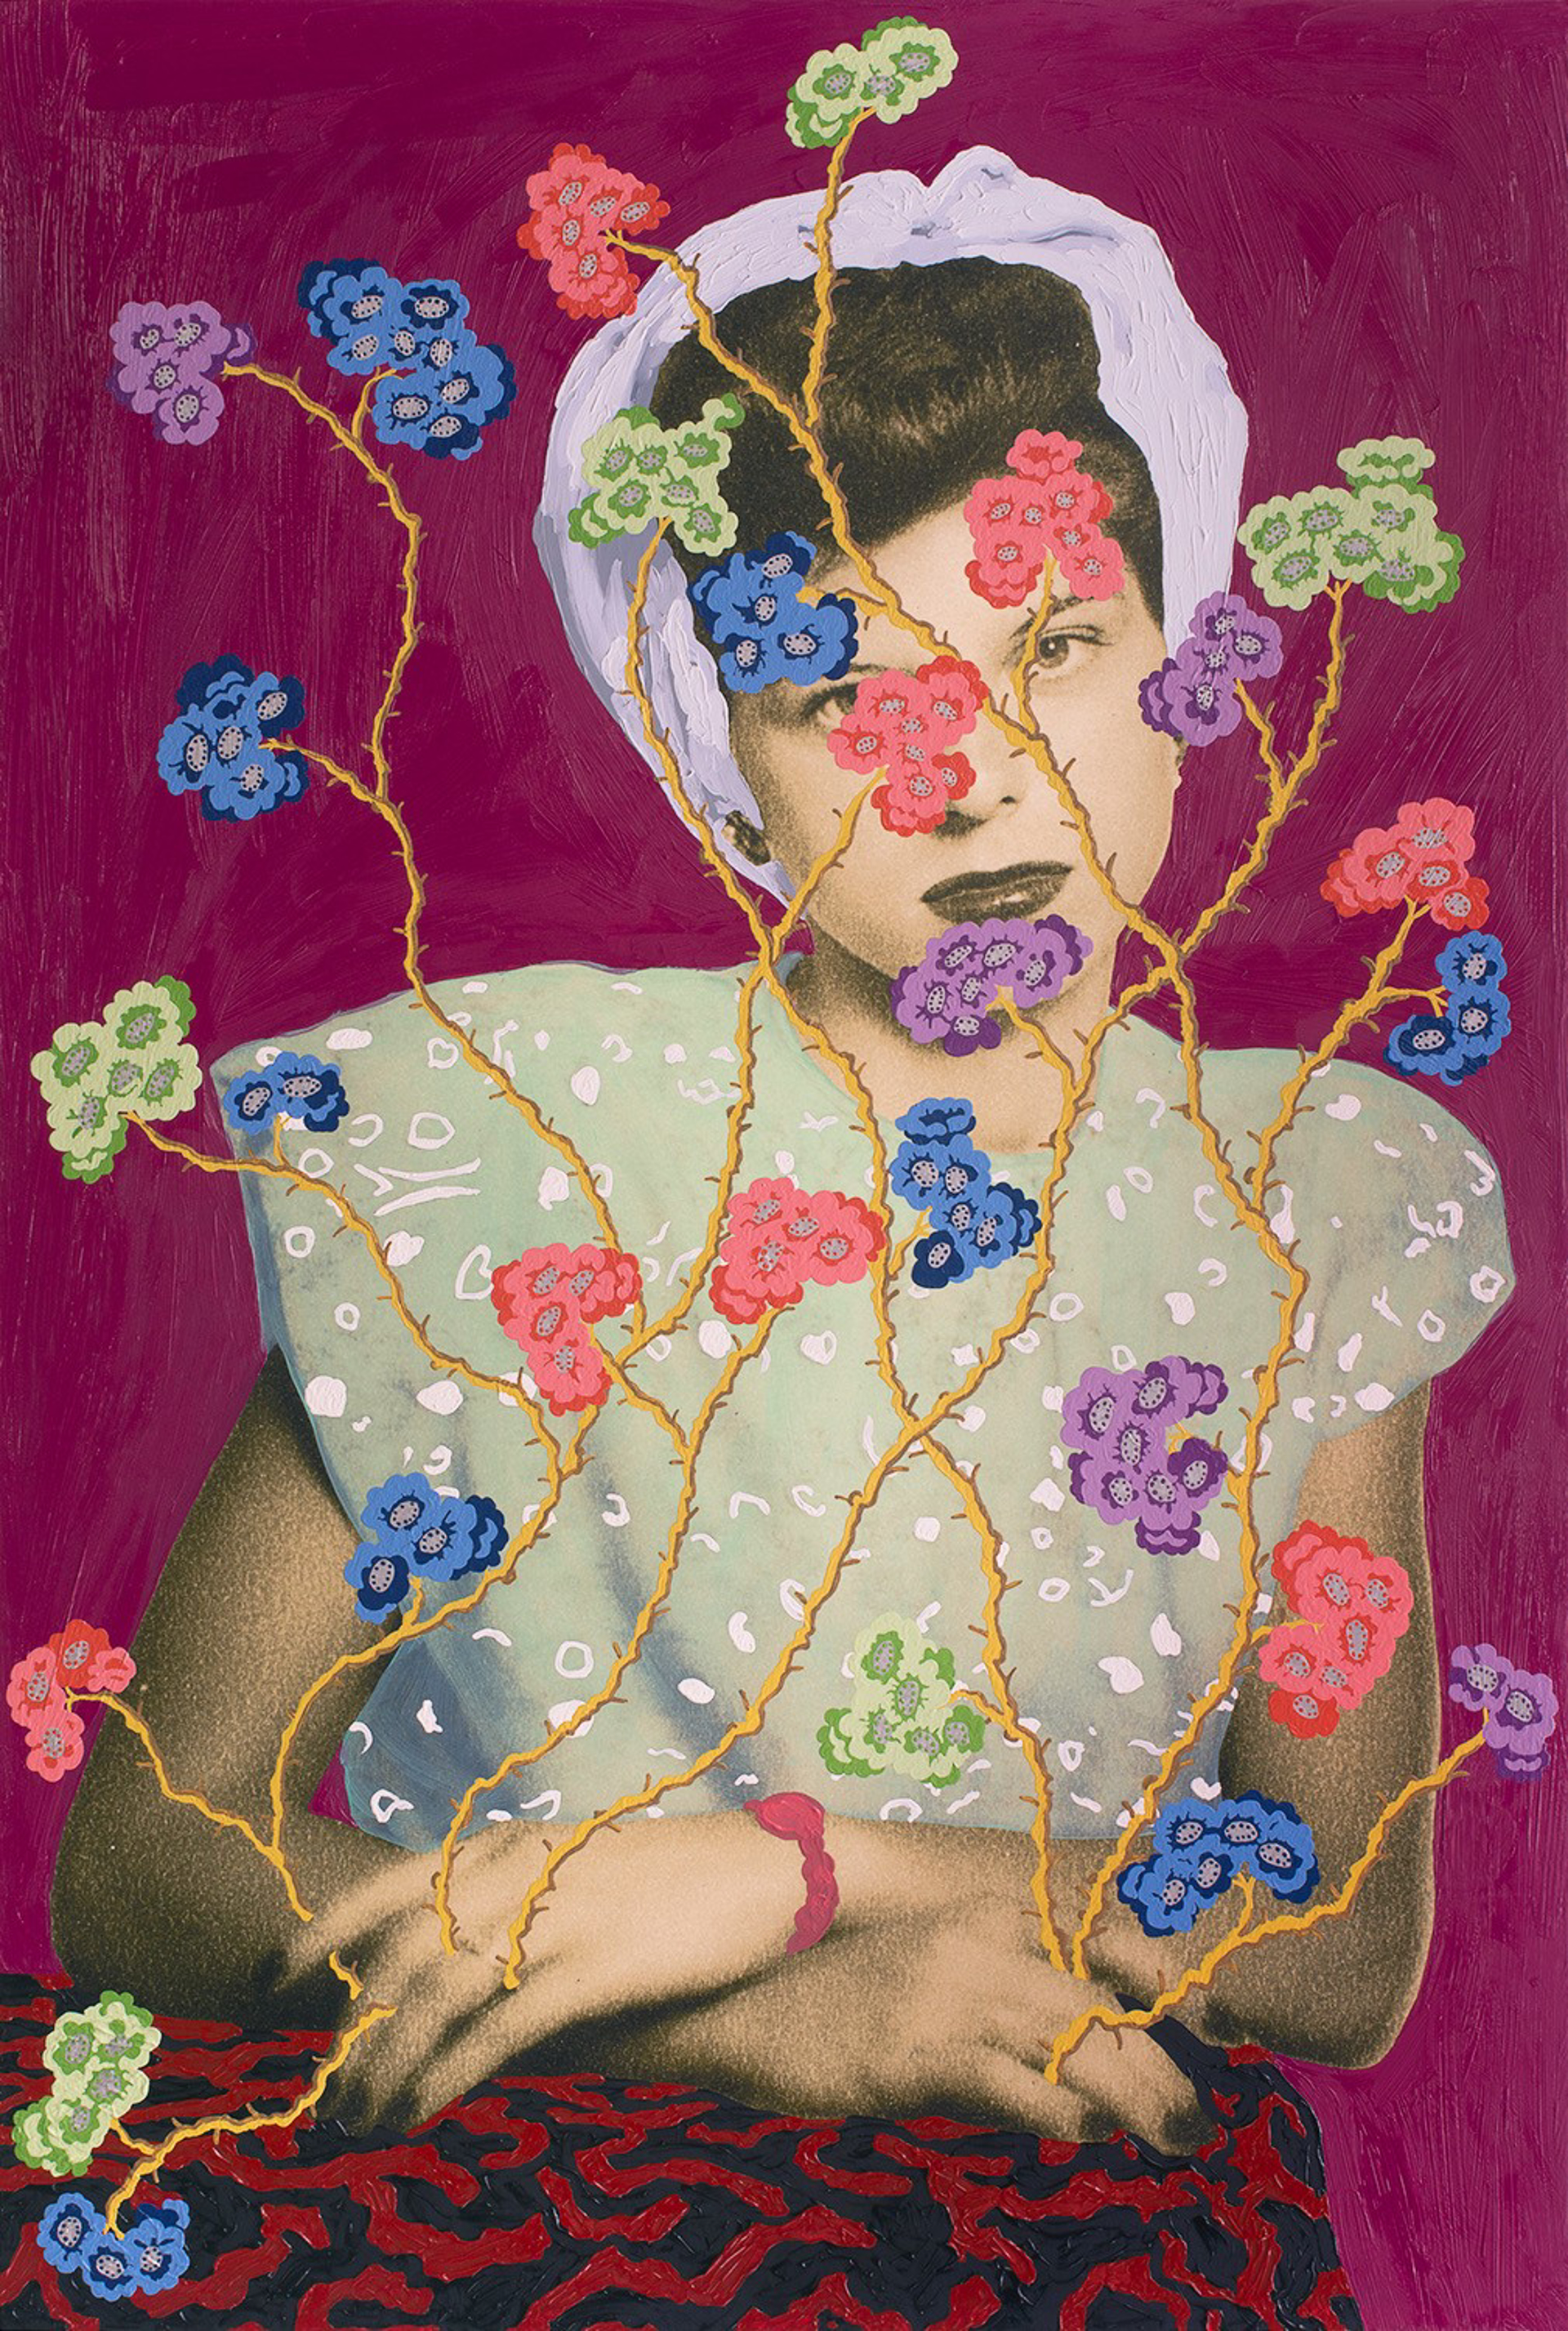 Woman with Headwrap and Multi-Colored Flowers by Daisy Patton